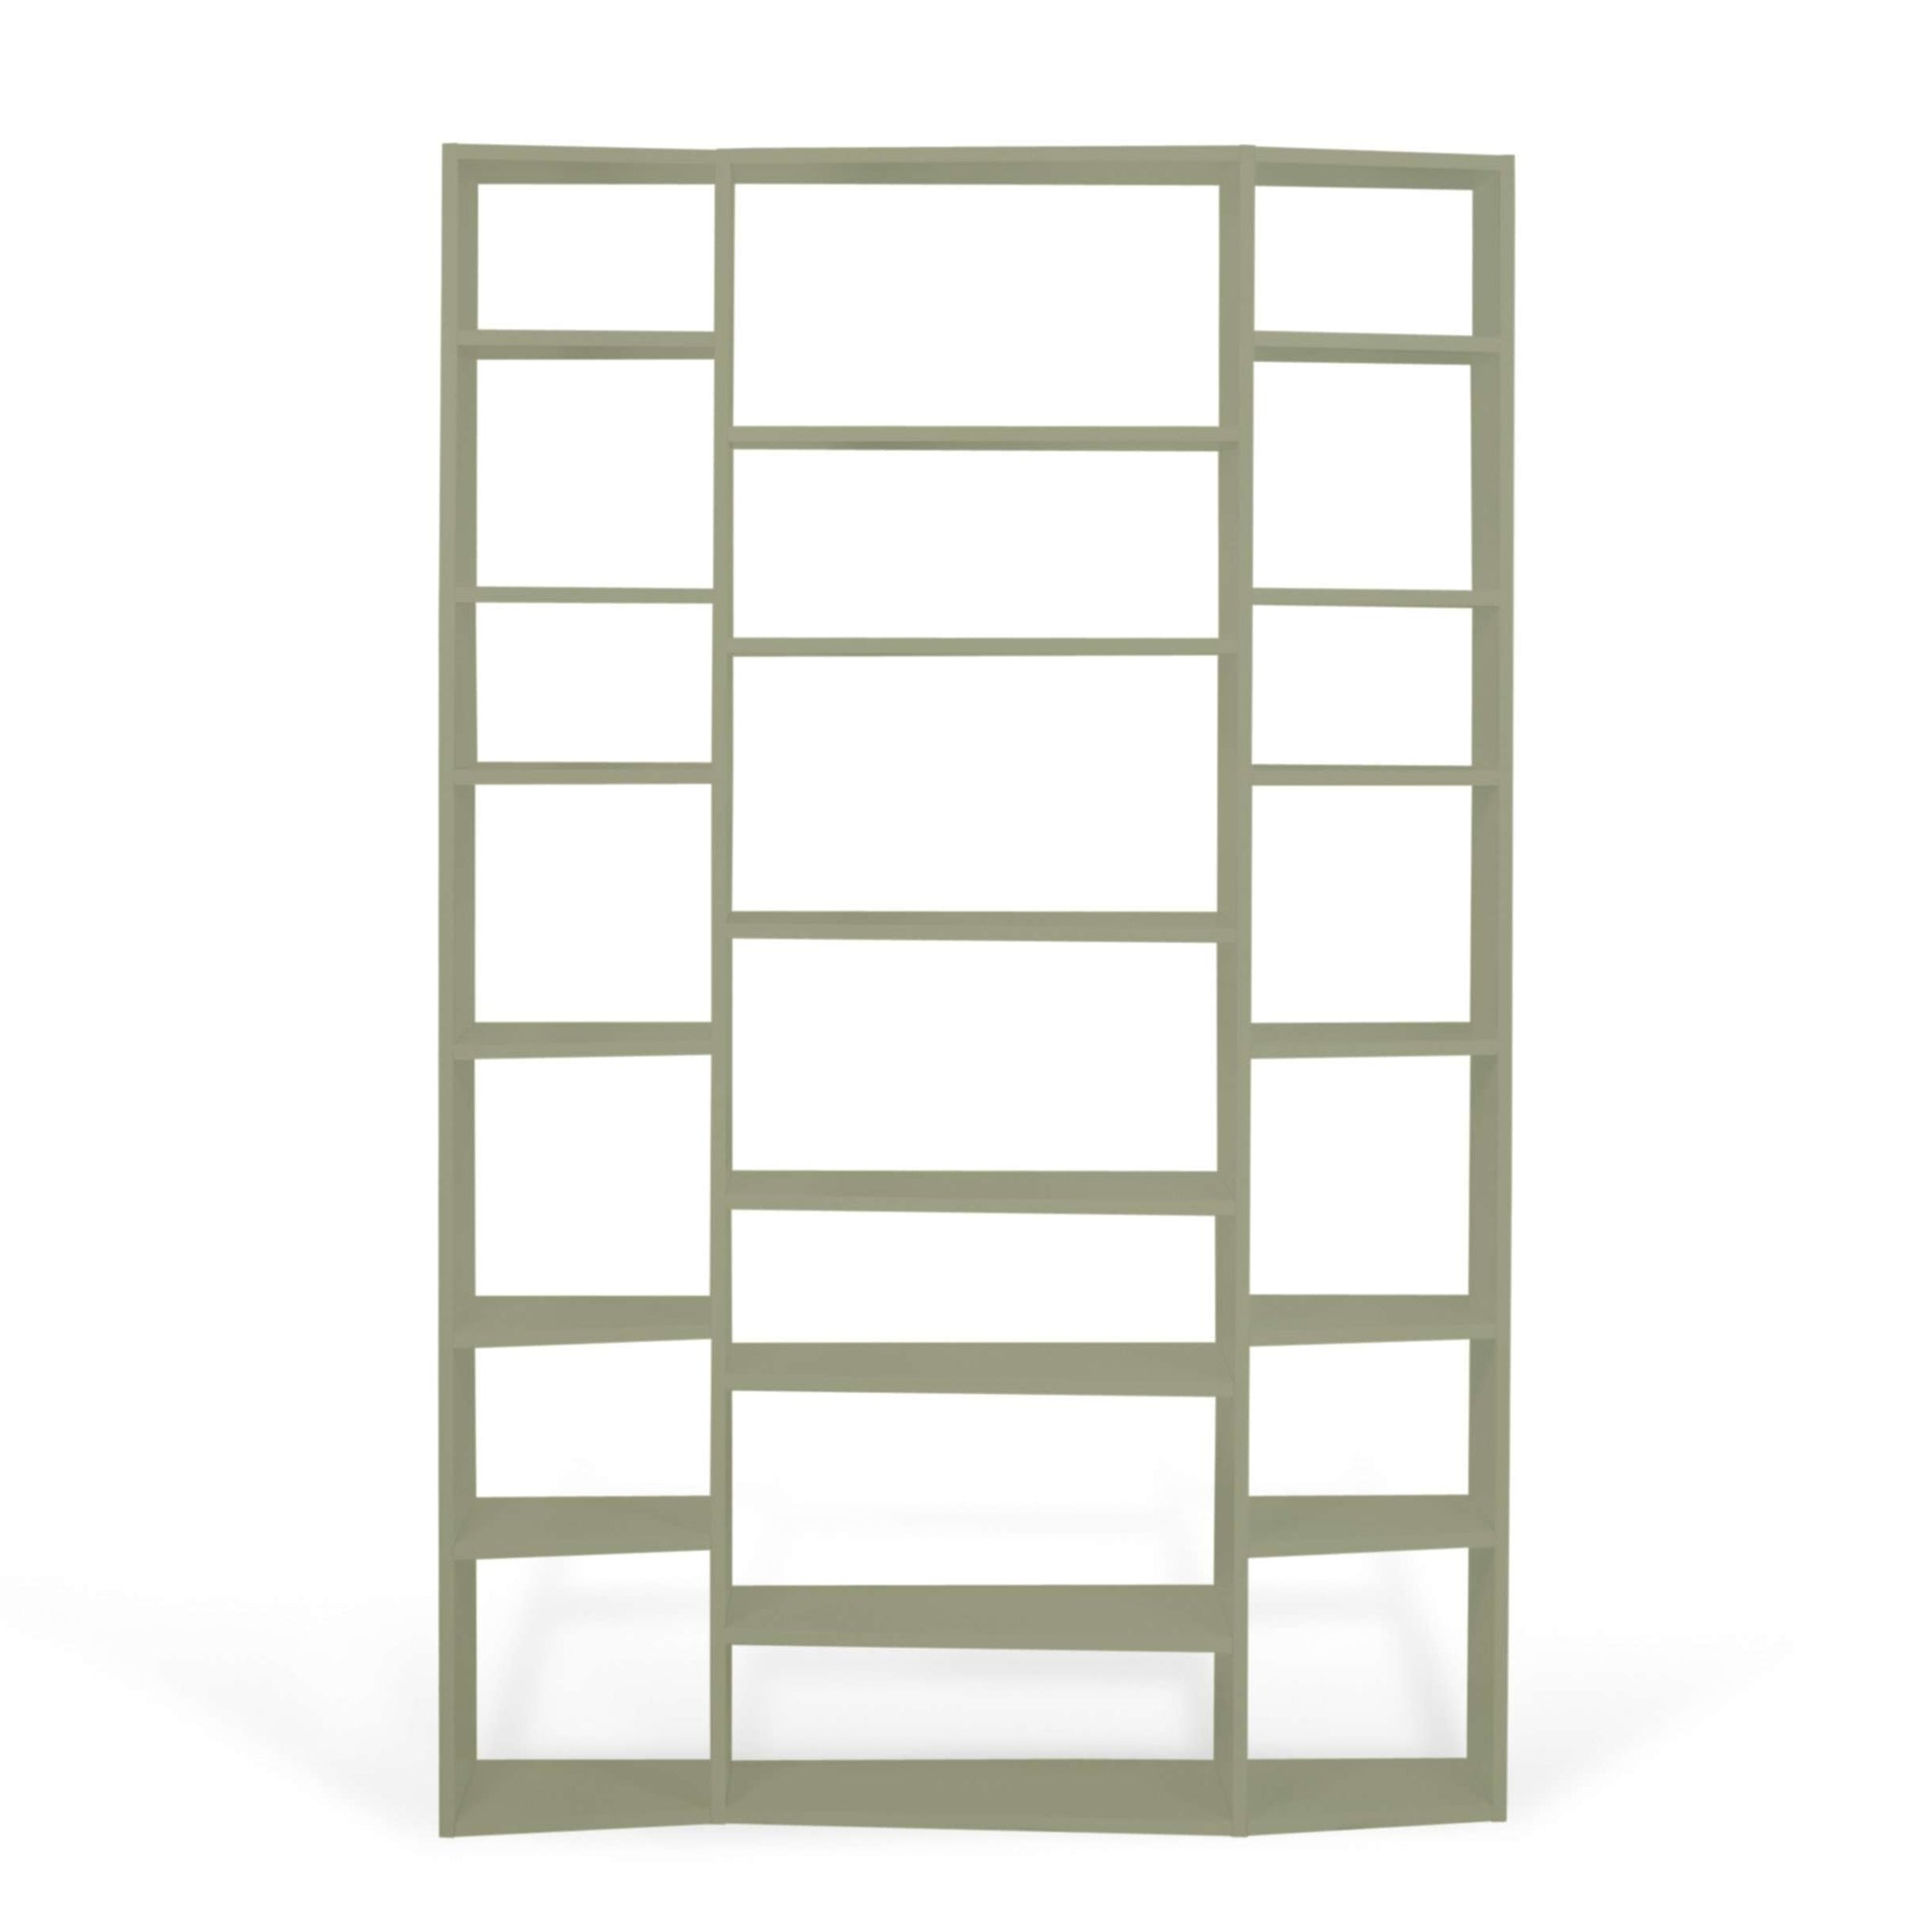 Tema Home-Valsa Composition 2012-002 126999-VALSA2-Bookcase-MODTEMPO